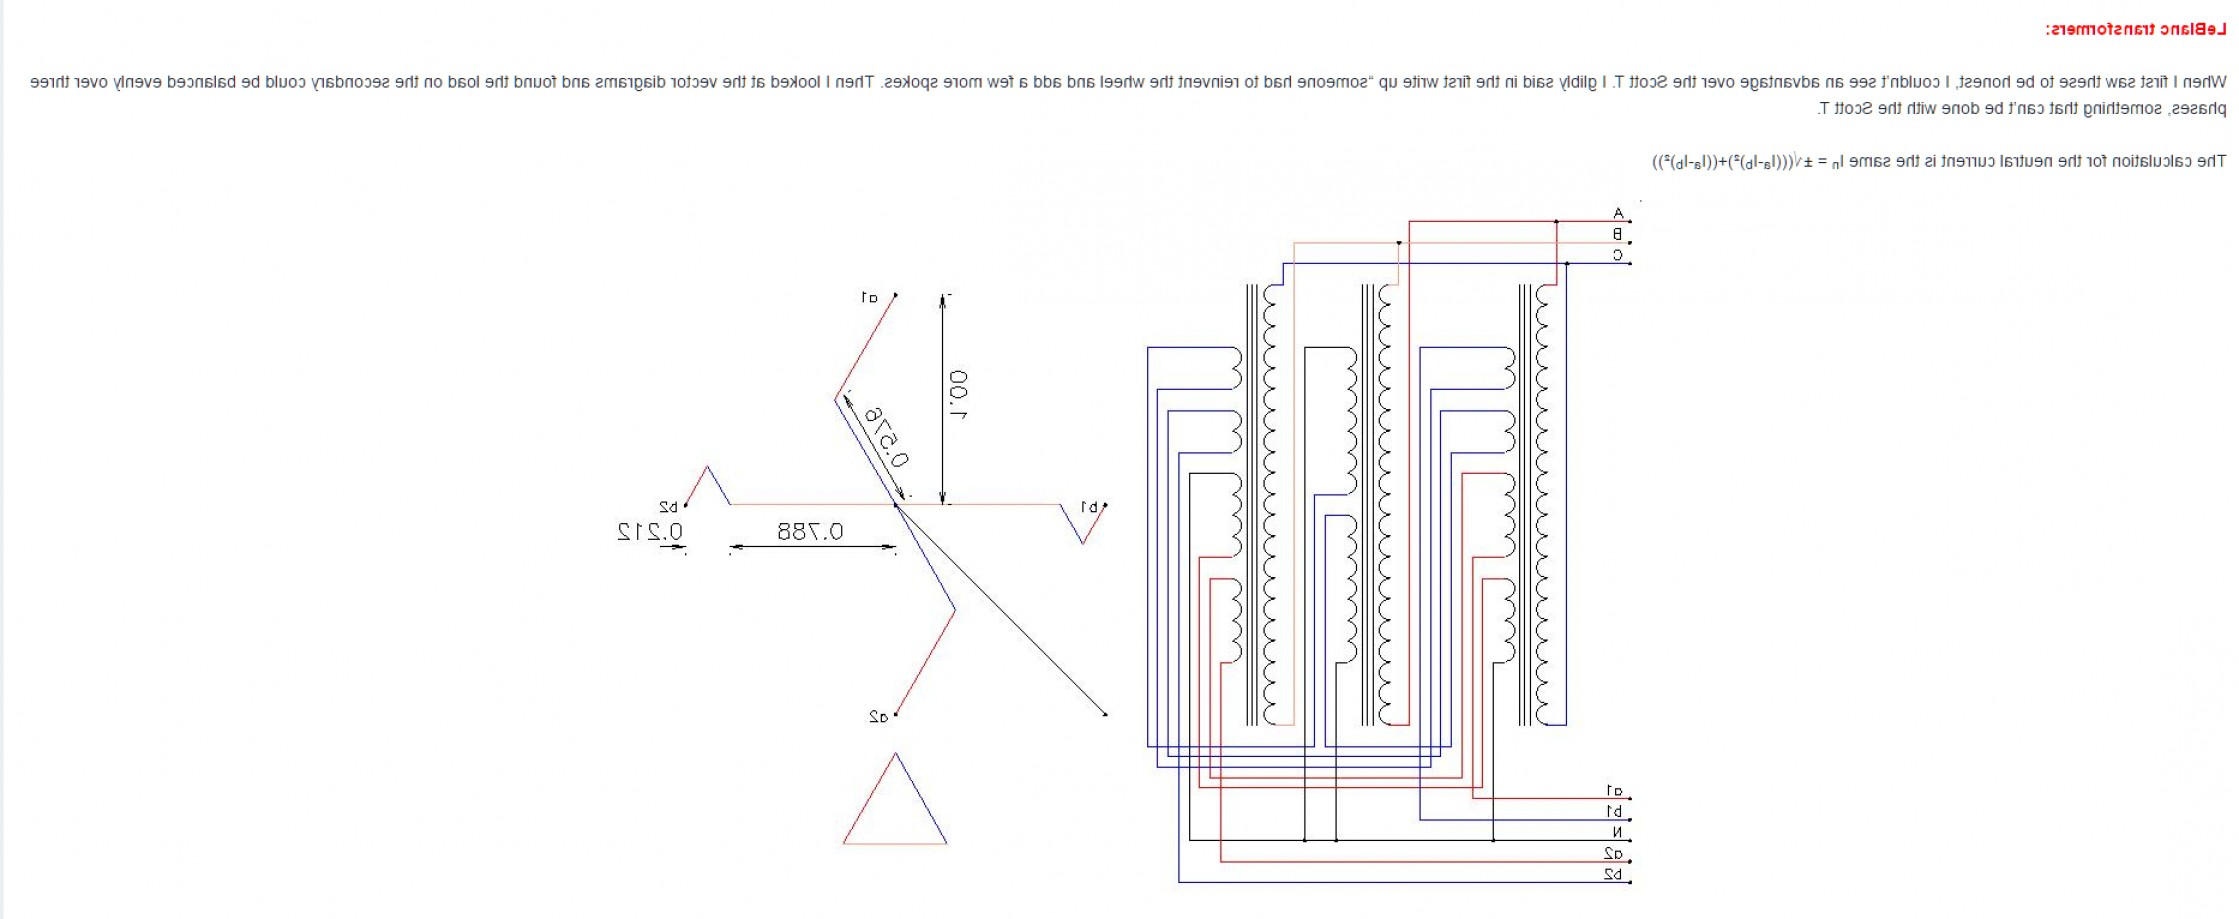 Transformer Vector Diagrams: What Is The Difference Between Scott And Leblanc Transformations